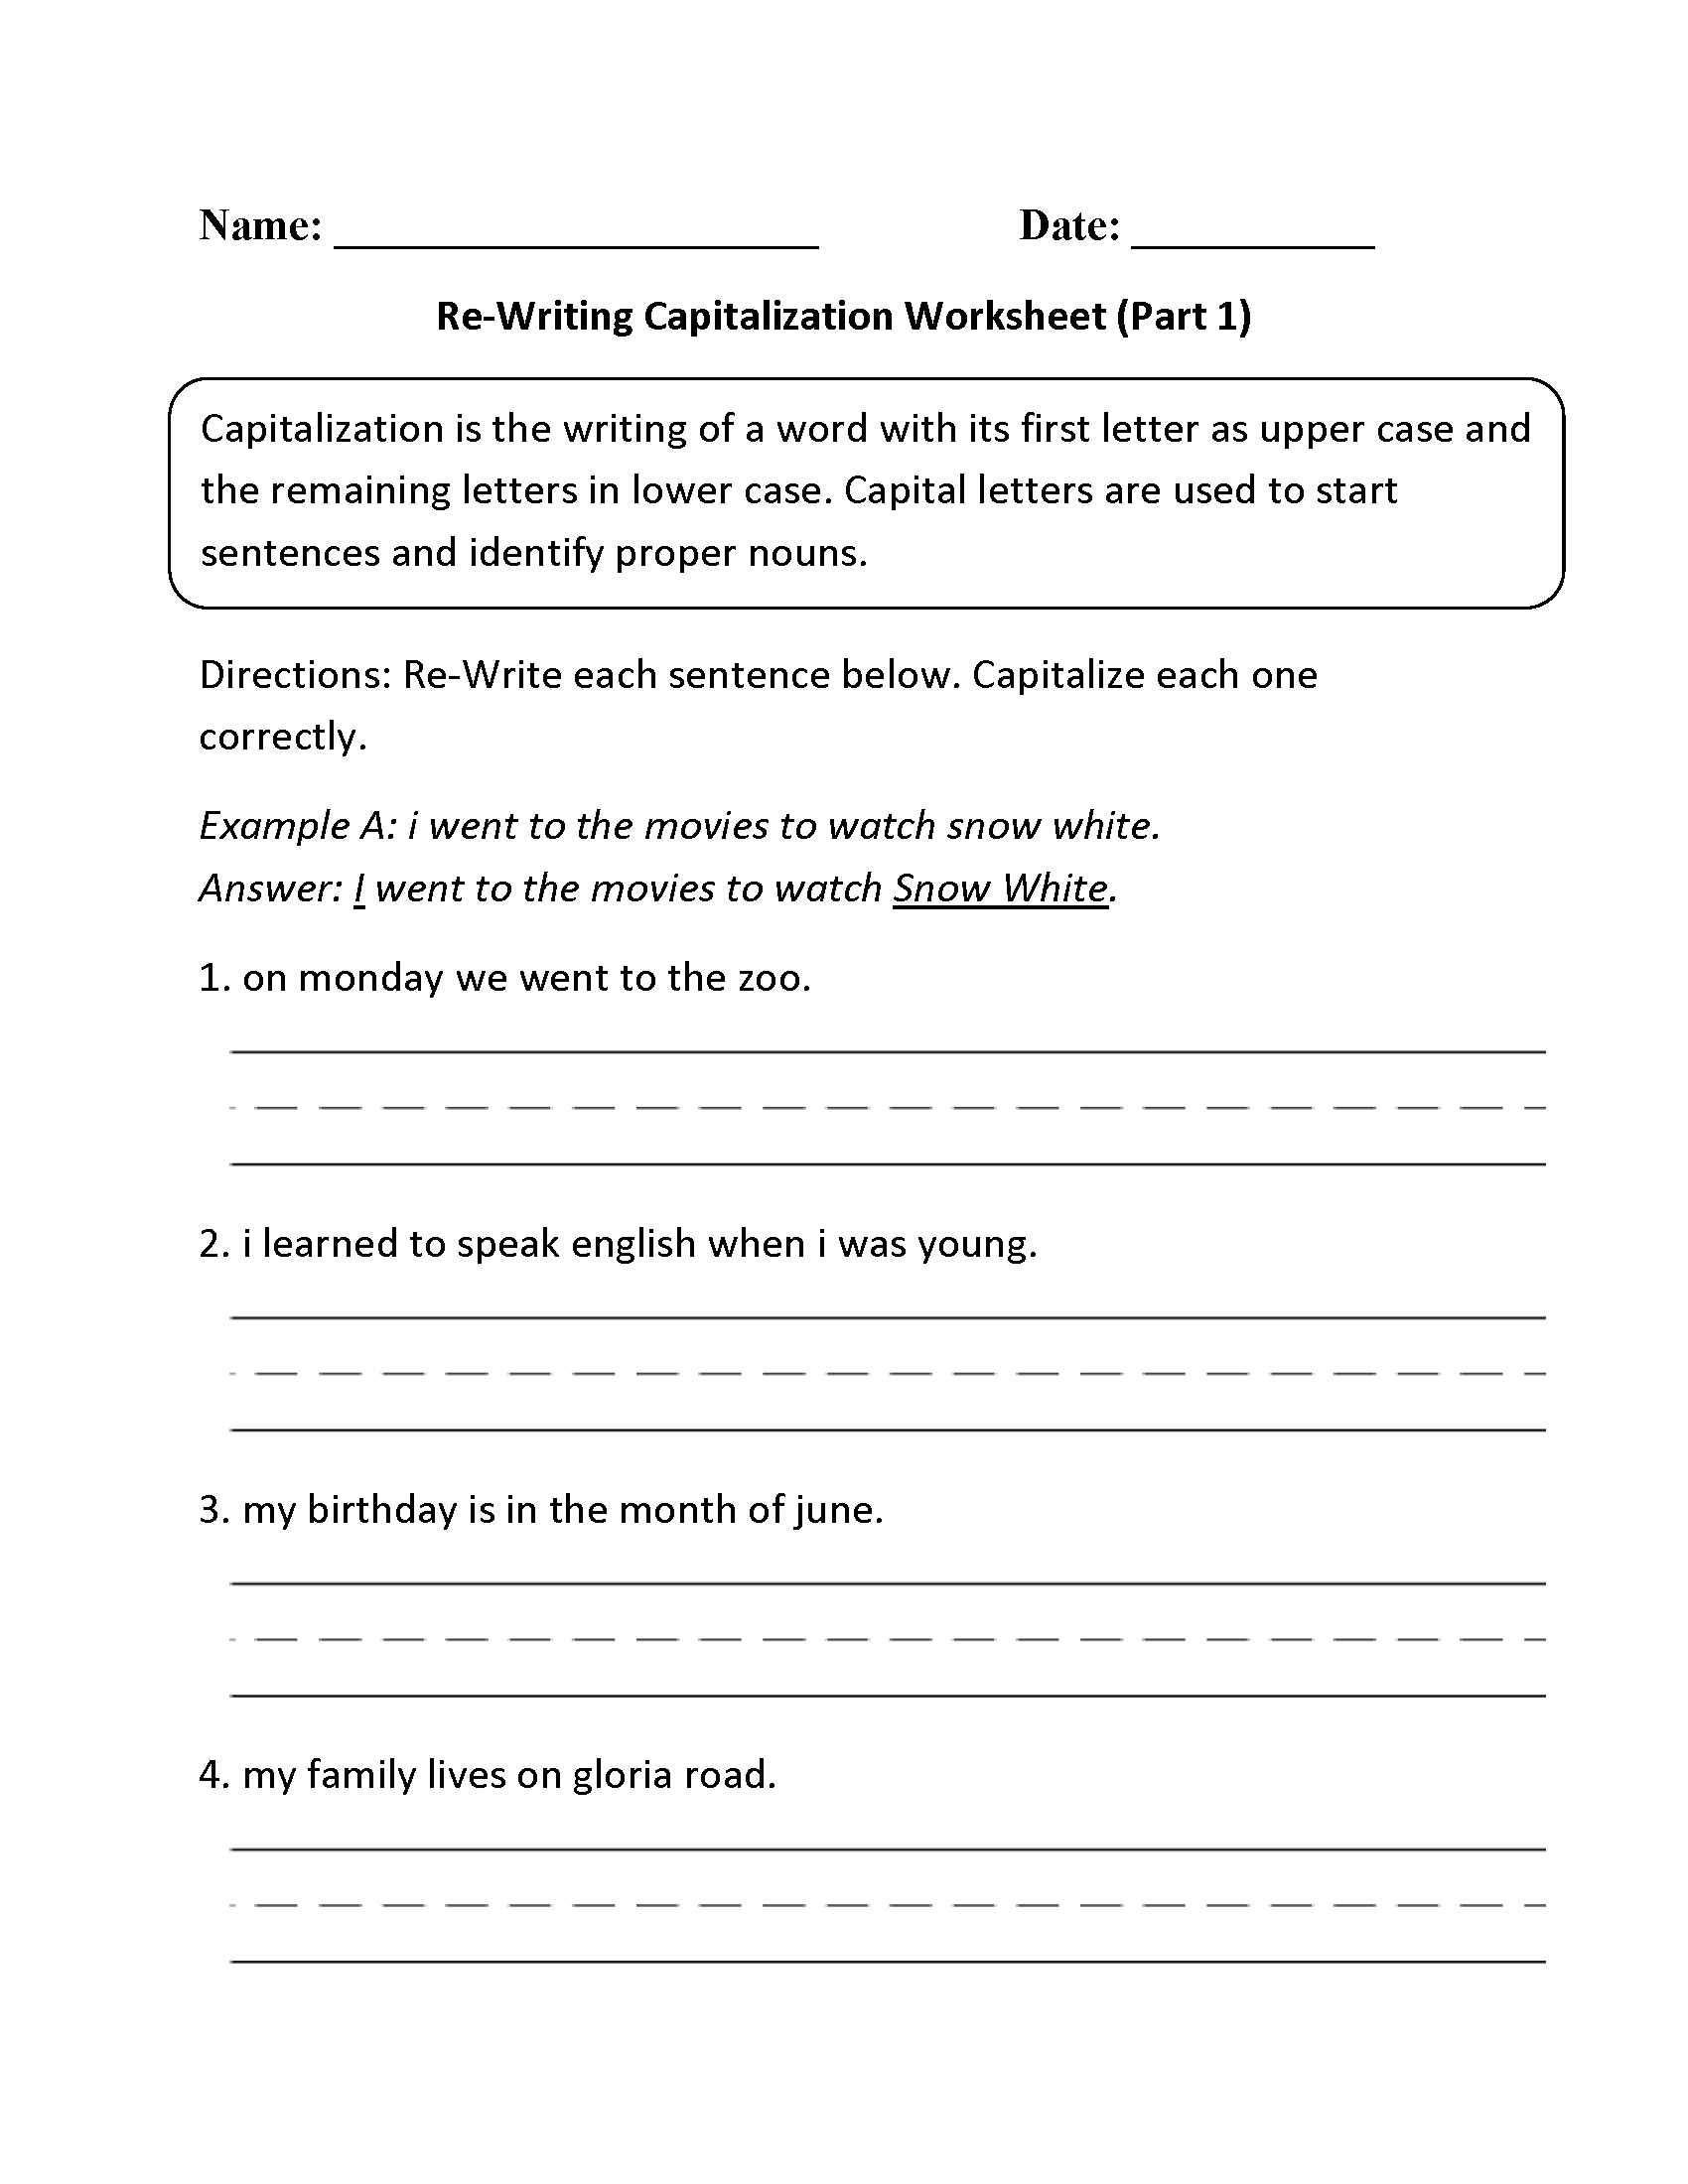 Worksheets Capitalization Worksheets For 4th Grade englishlinx com capitalization worksheets re writing worksheet part 1